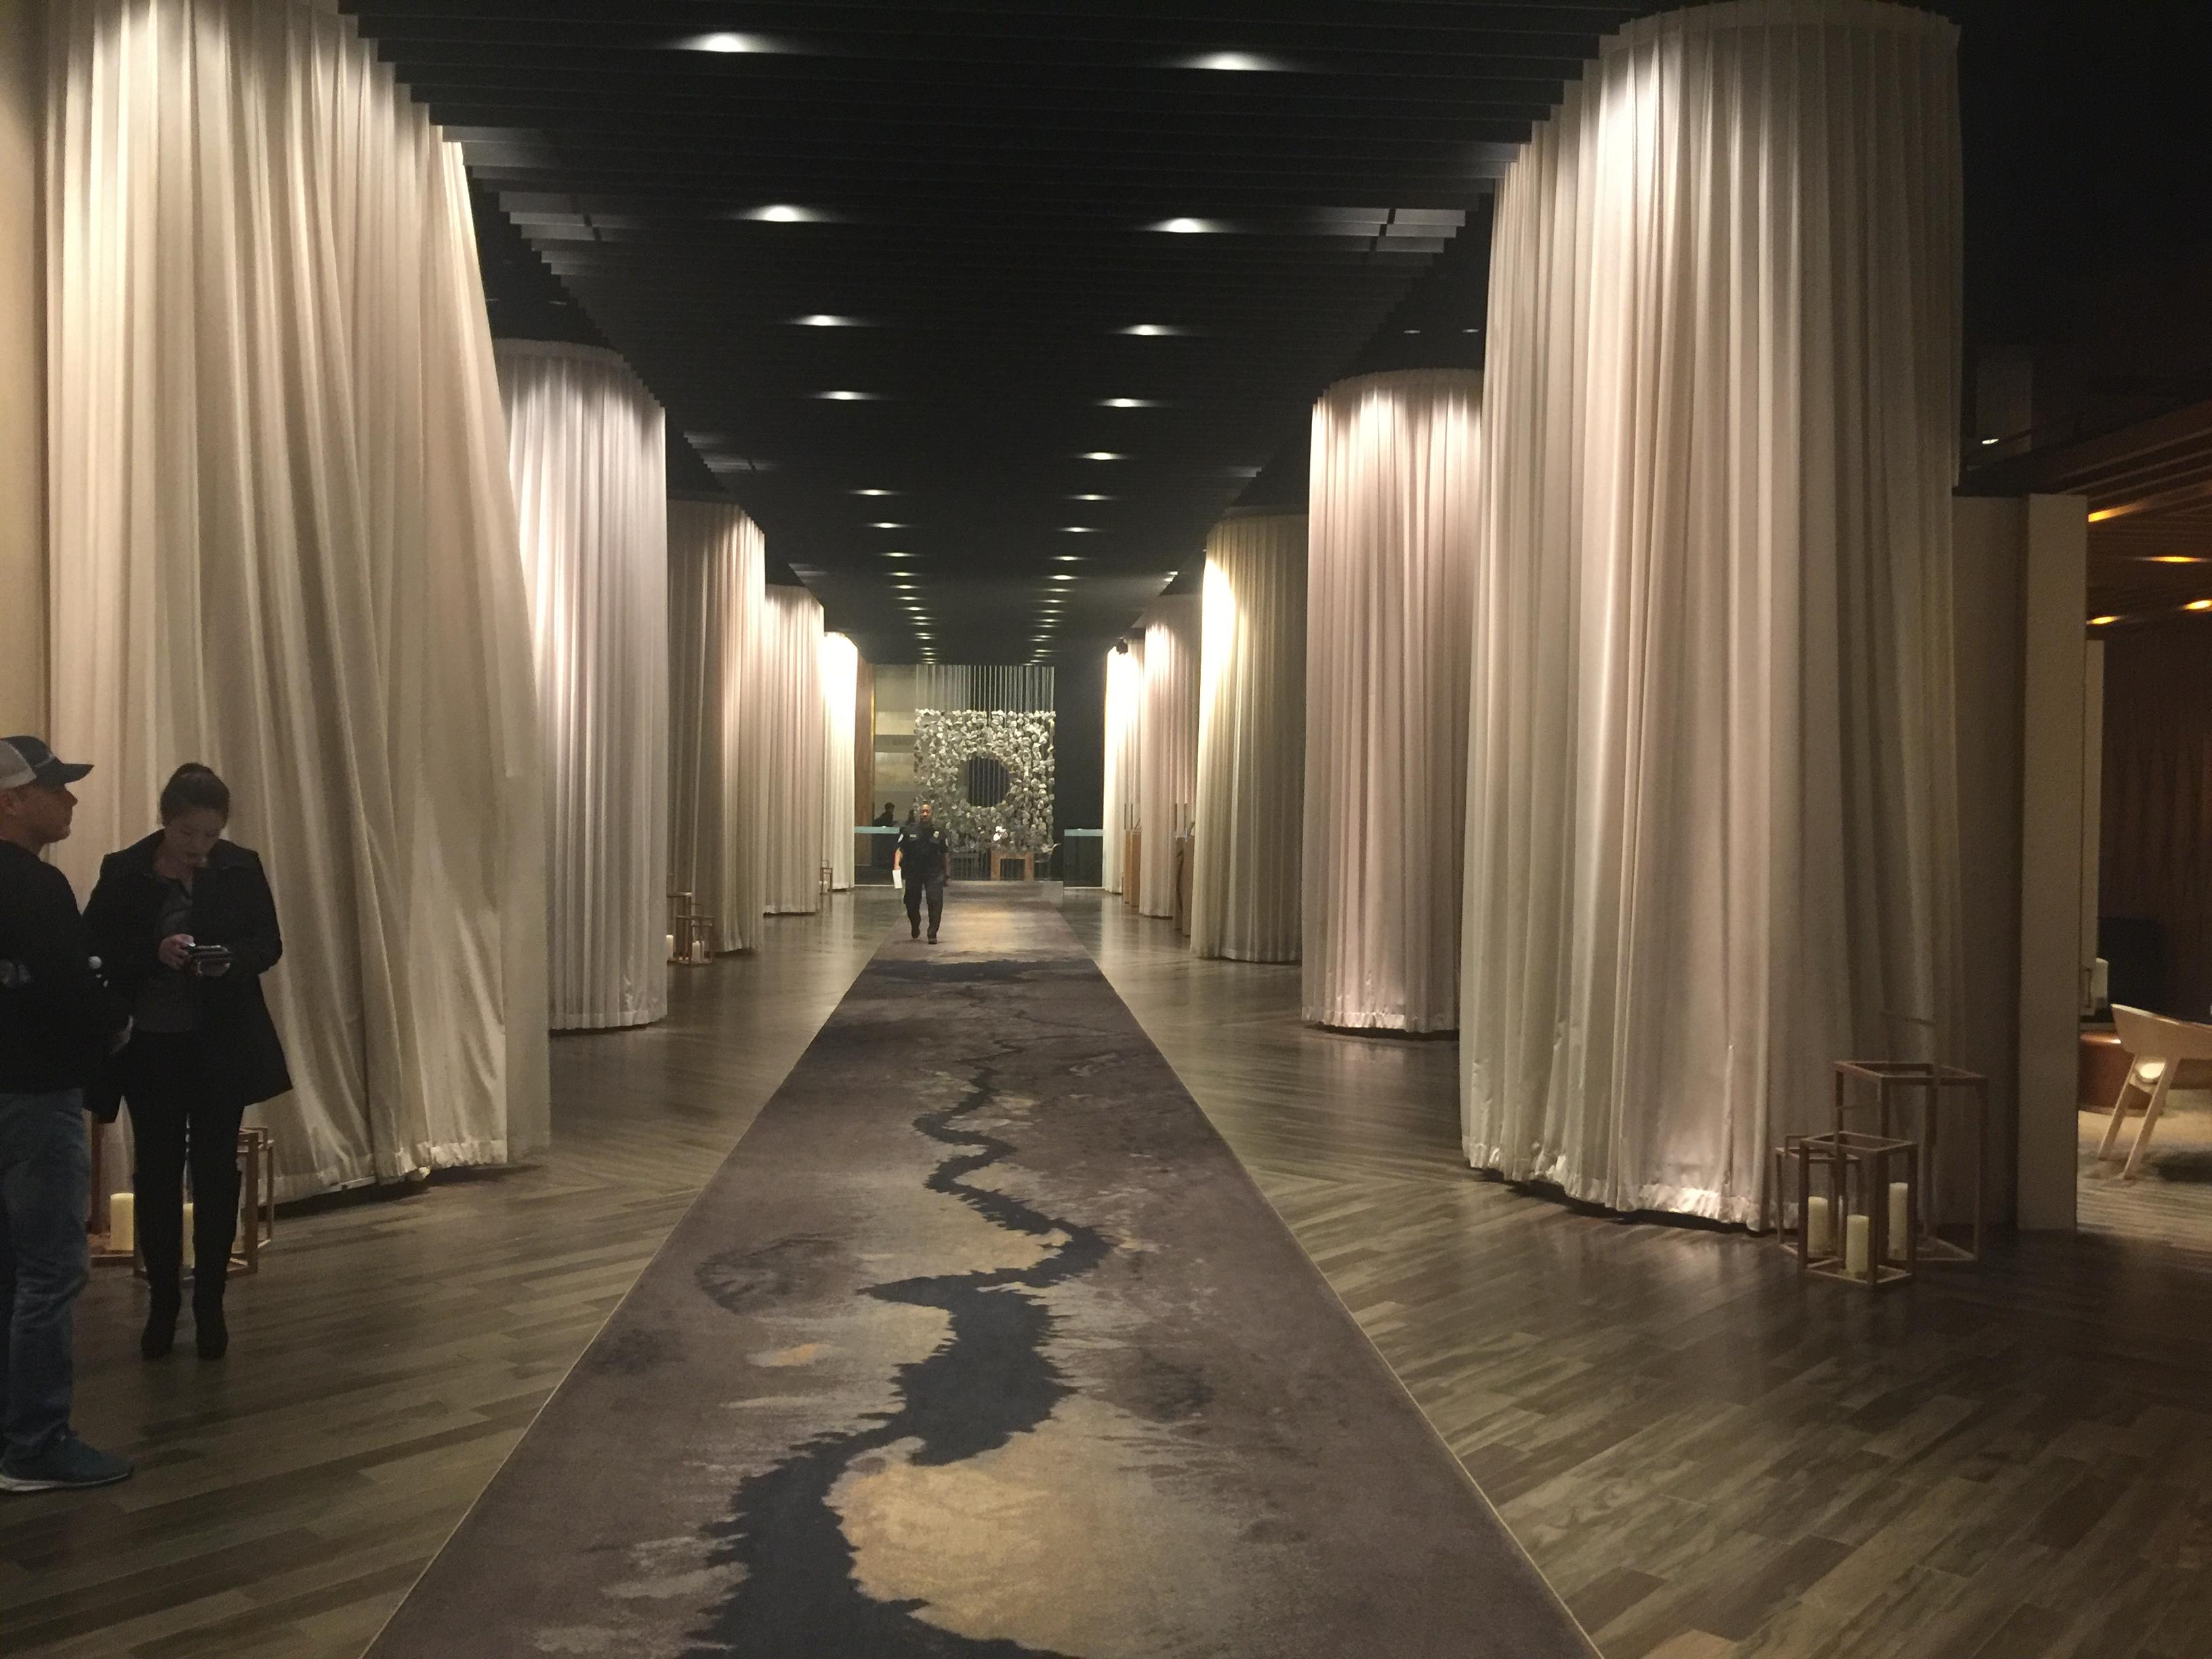 Delano Lobby with curtains